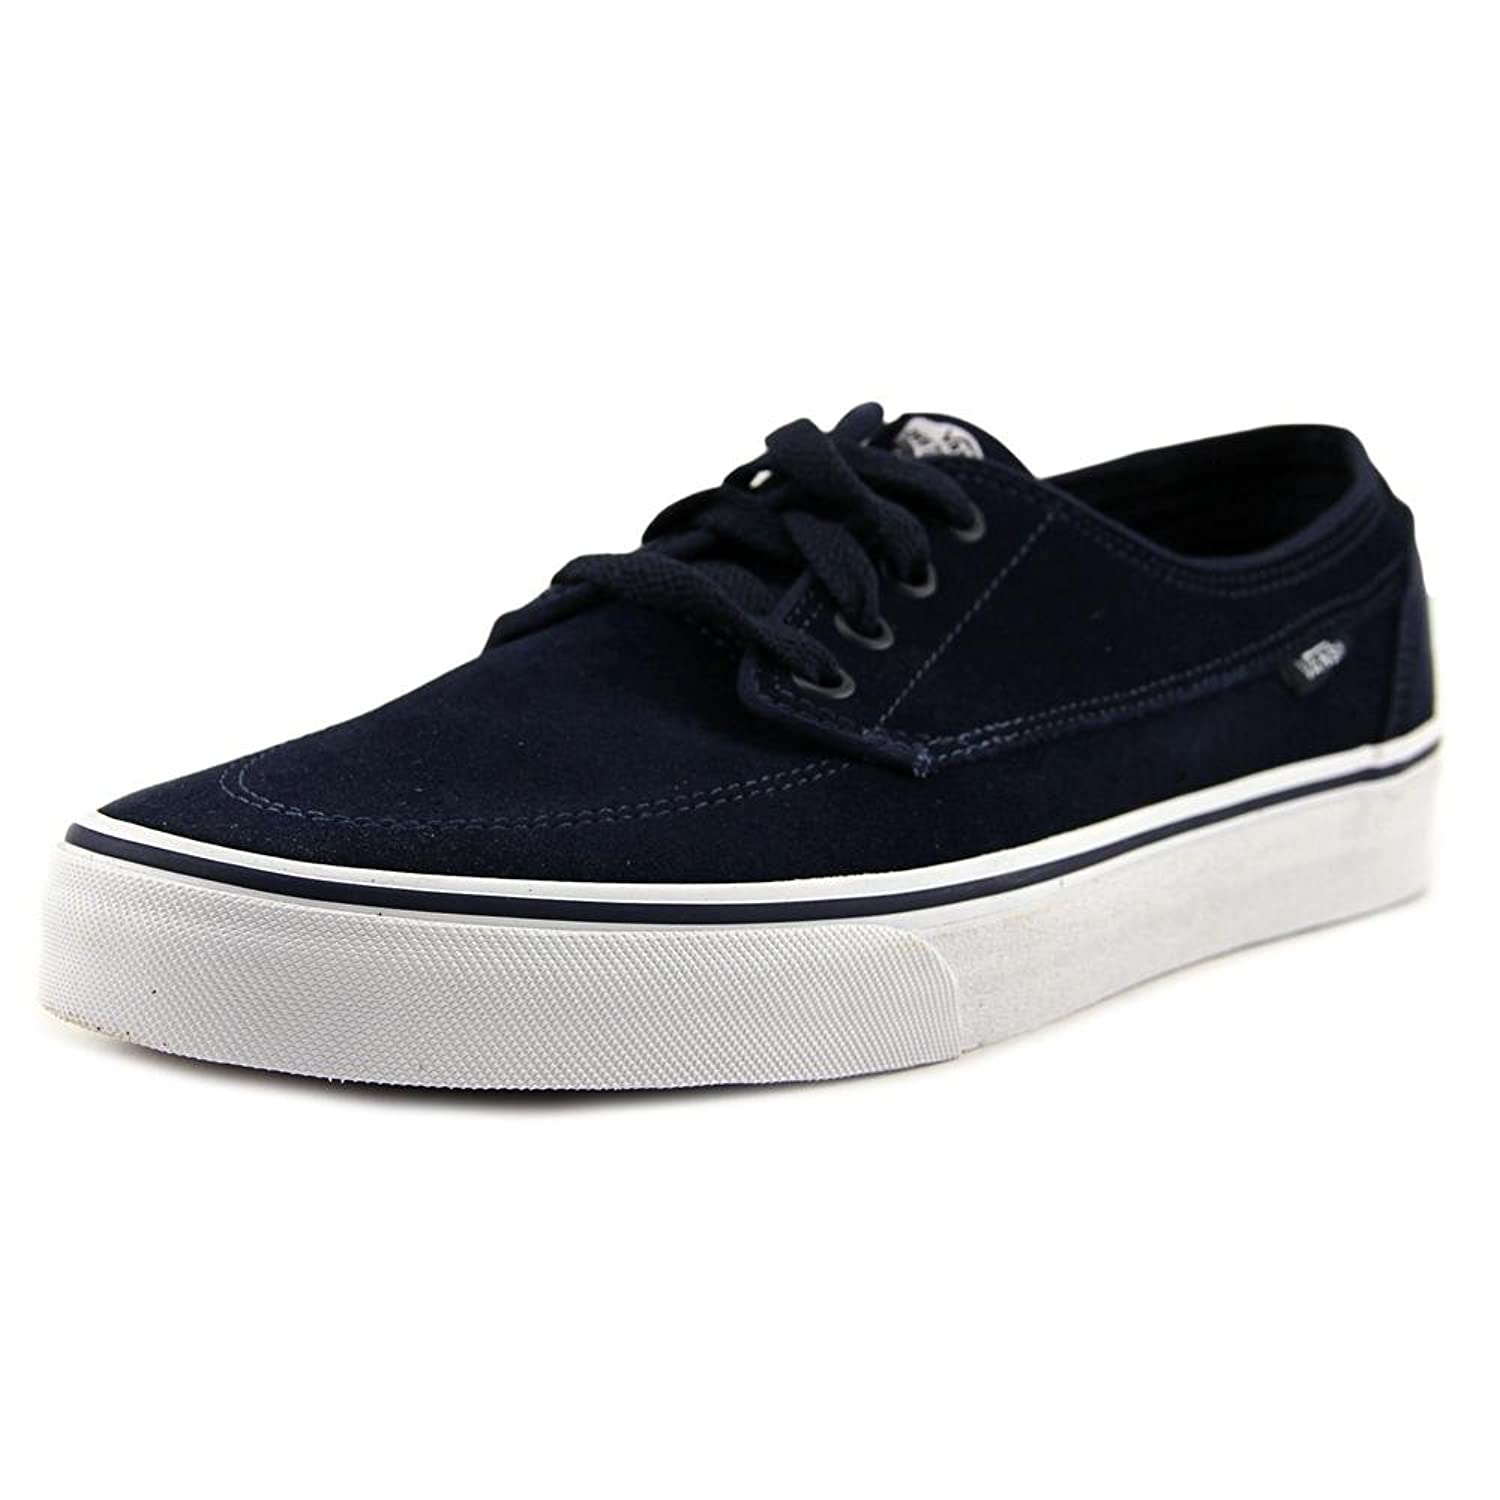 Baskets basses Vans Brigata FD9hBiaW